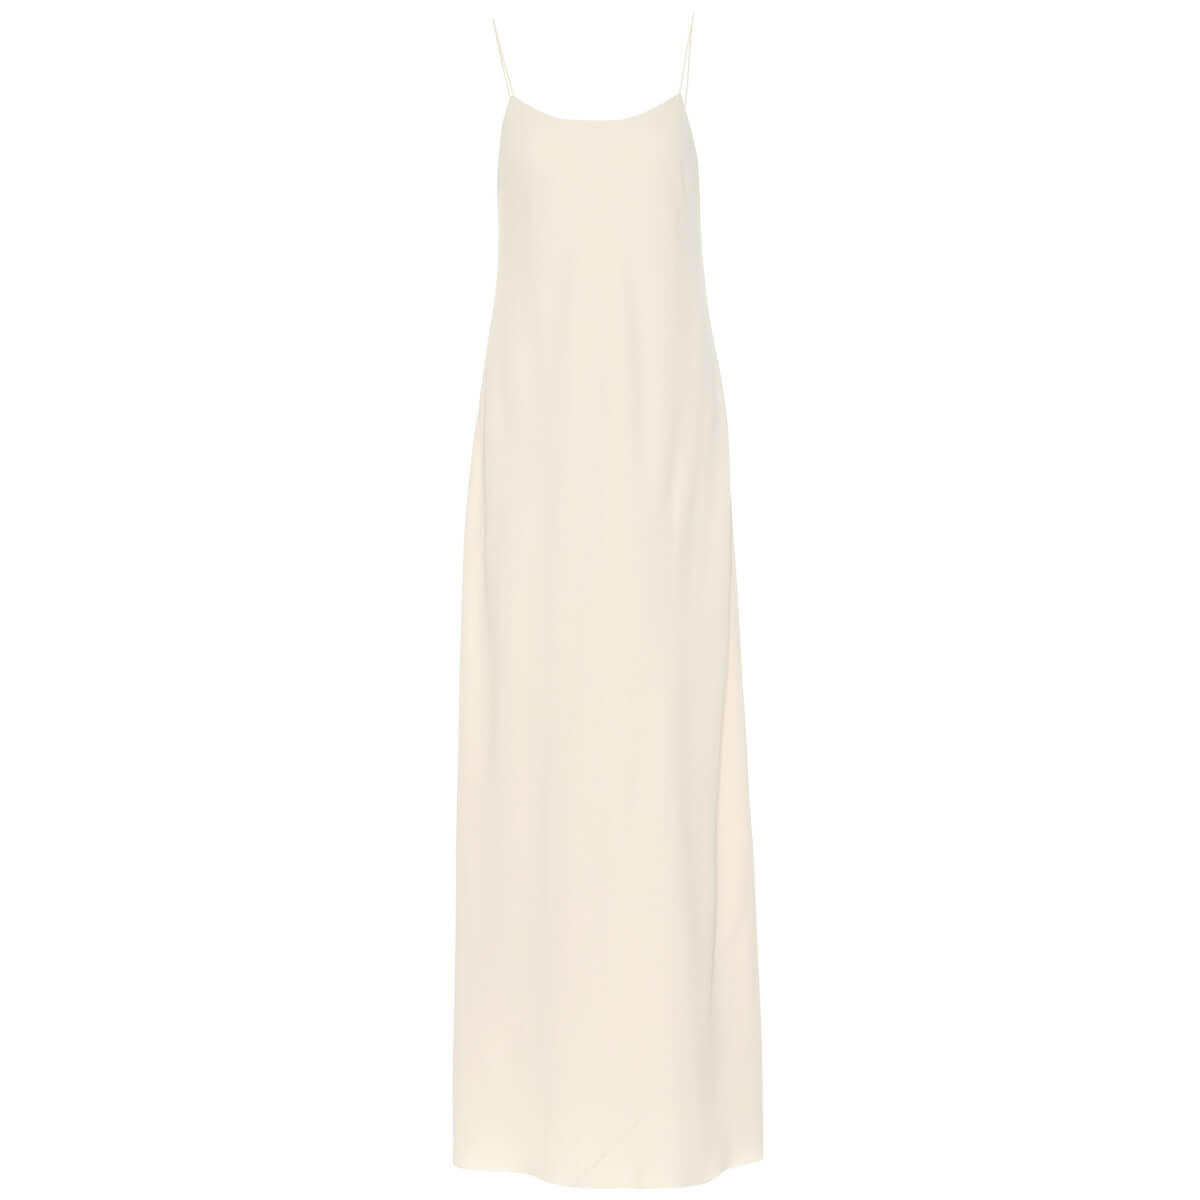 THE ROW Ebbins sleeveless crêpe dress